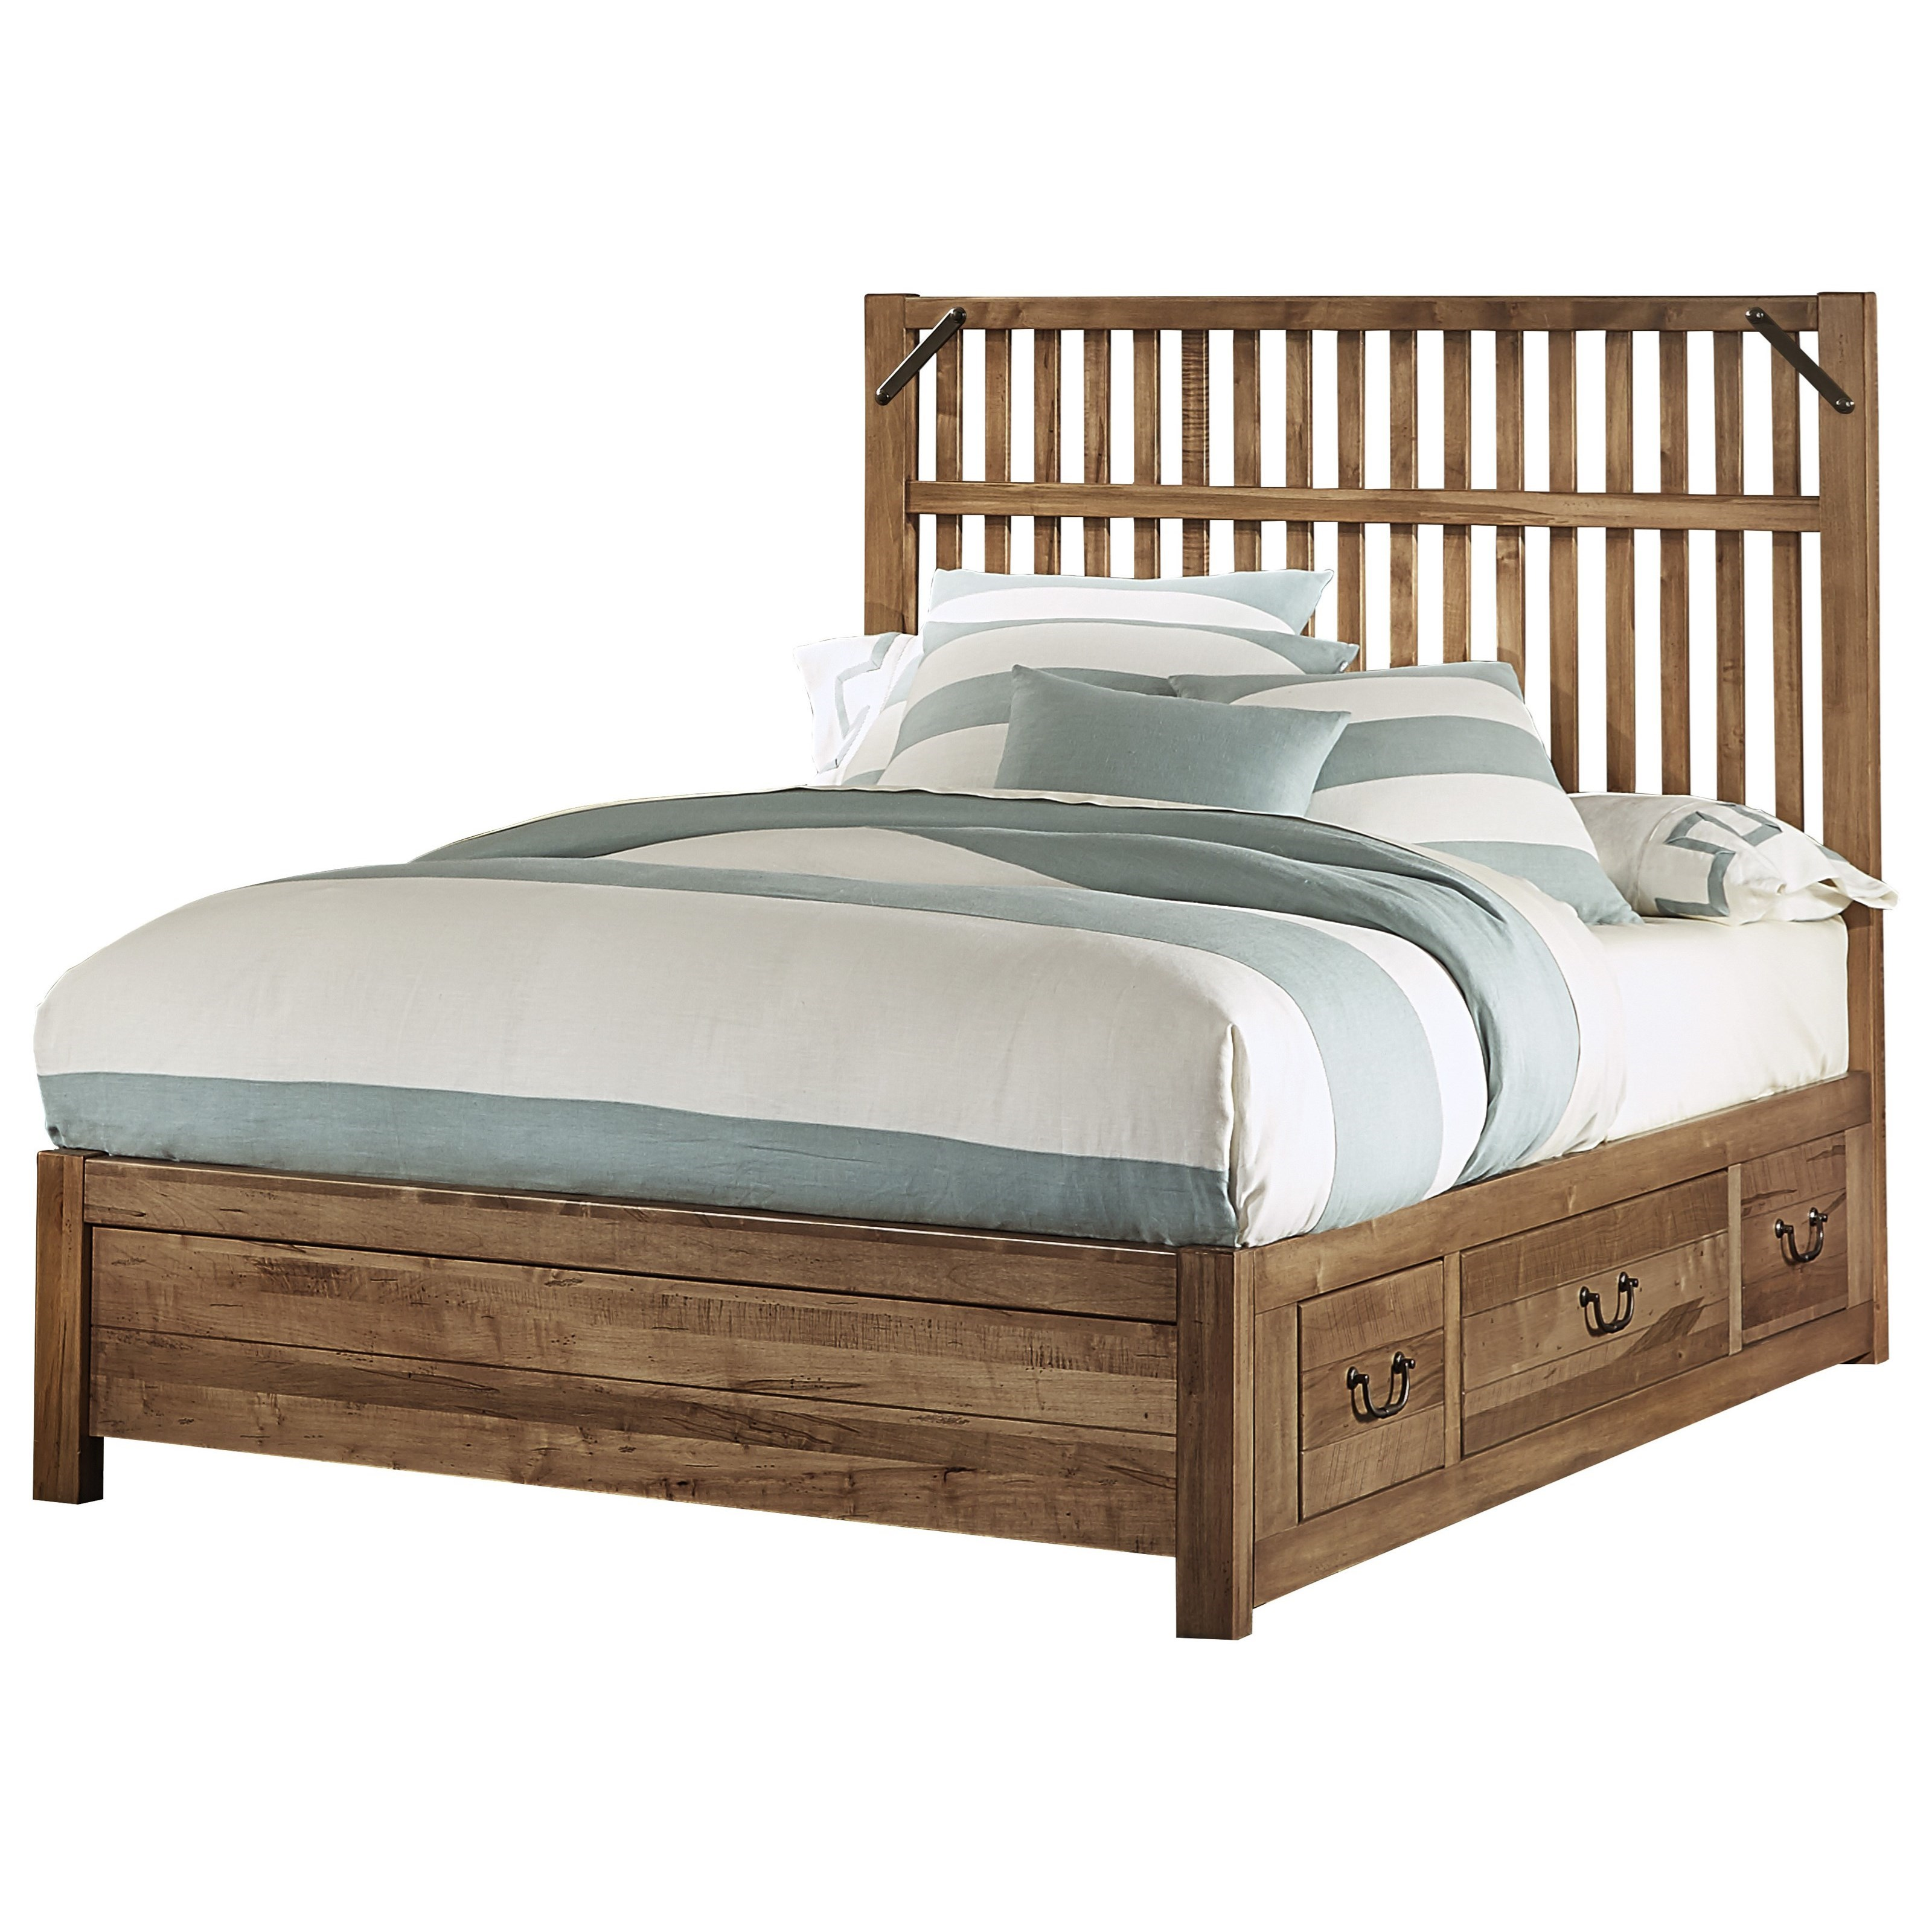 Sedgwick Queen Bed with Storage by Artisan & Post at Northeast Factory Direct